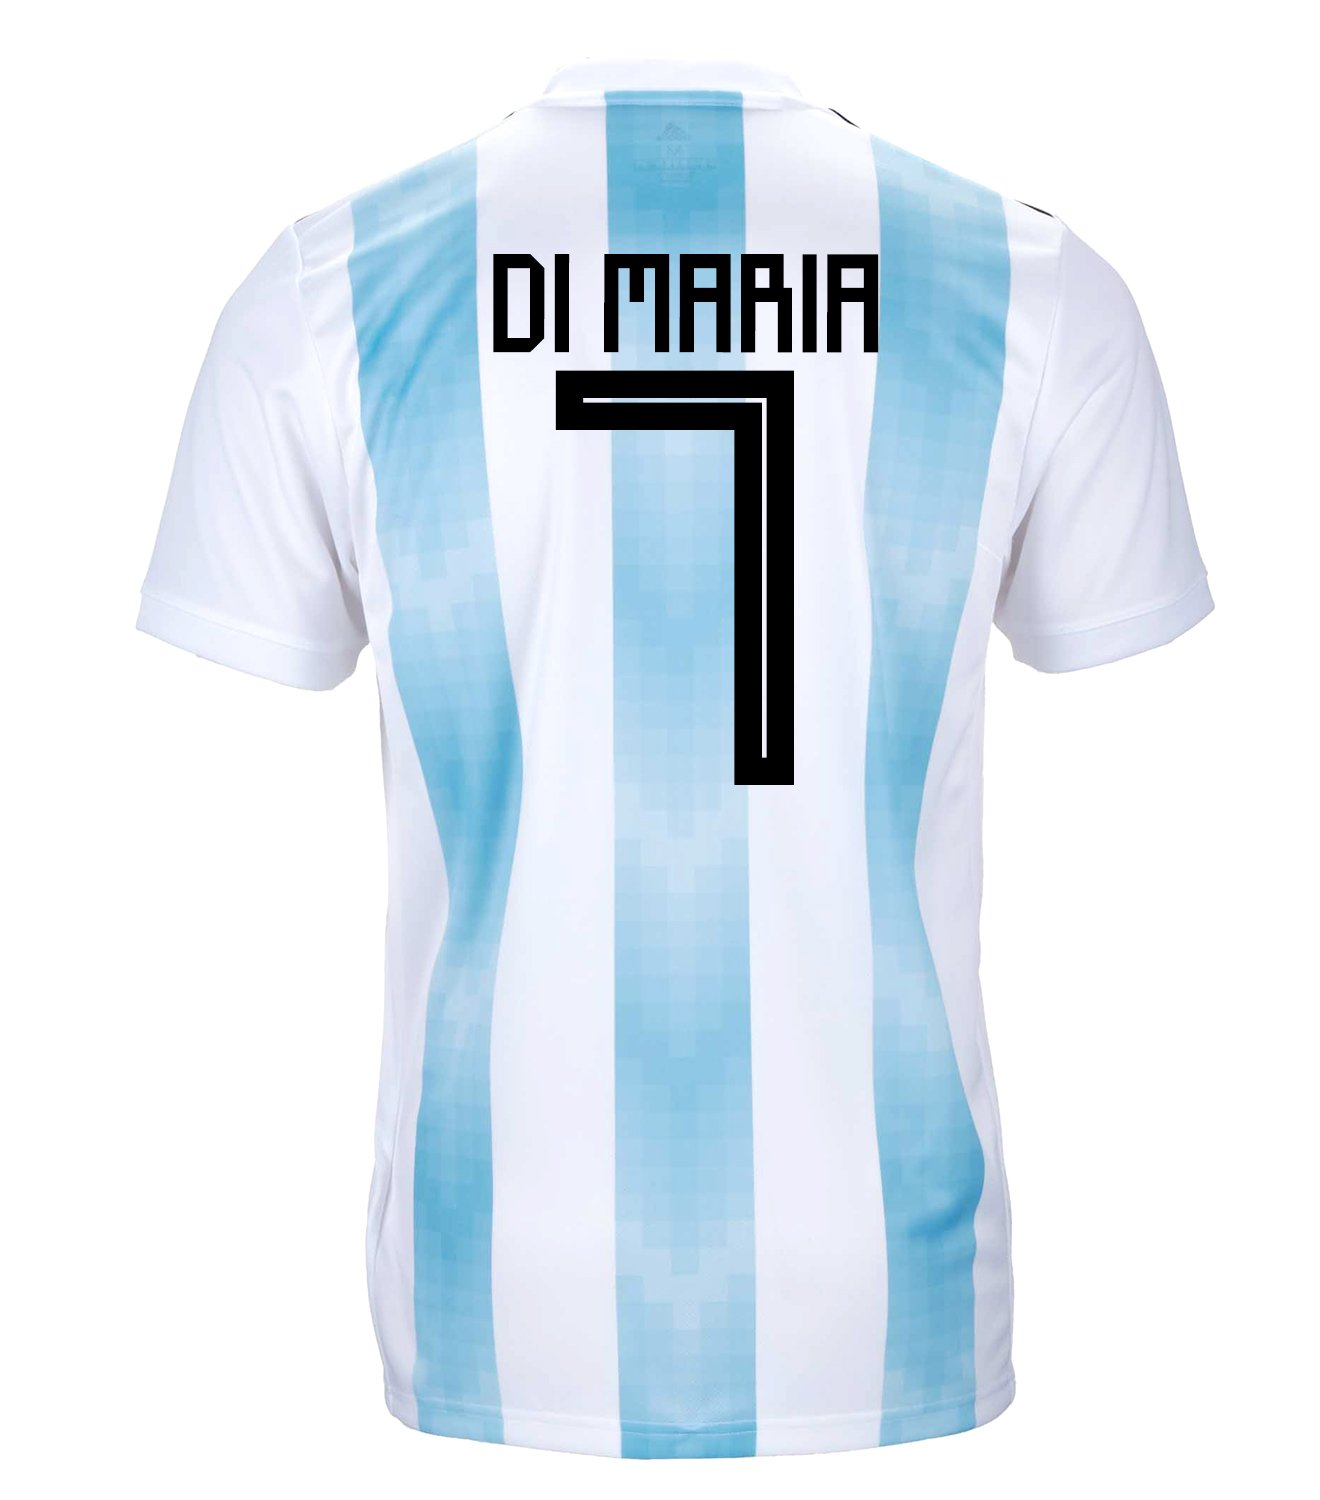 Adidas Di Maria #7 Argentina Official Youth Home Soccer Jersey World Cup Russia 2018 (XL)